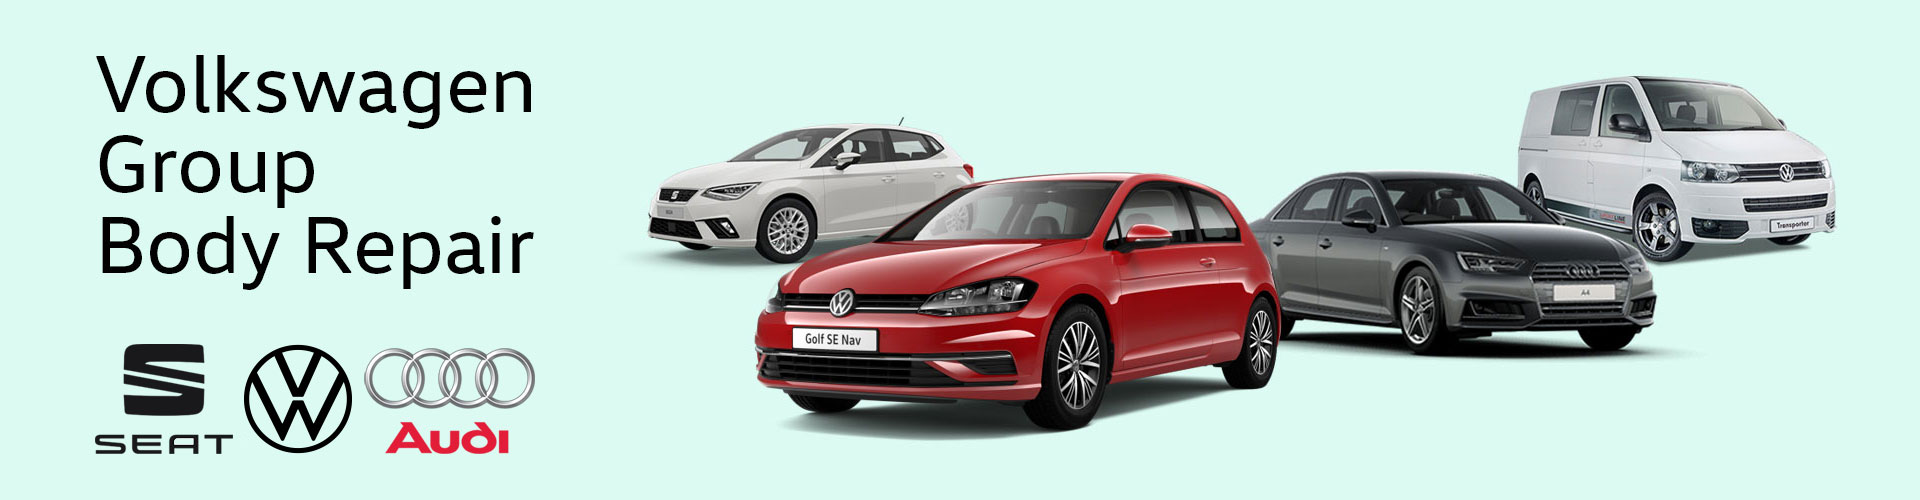 New Volkswagen Group Approved Body Repair